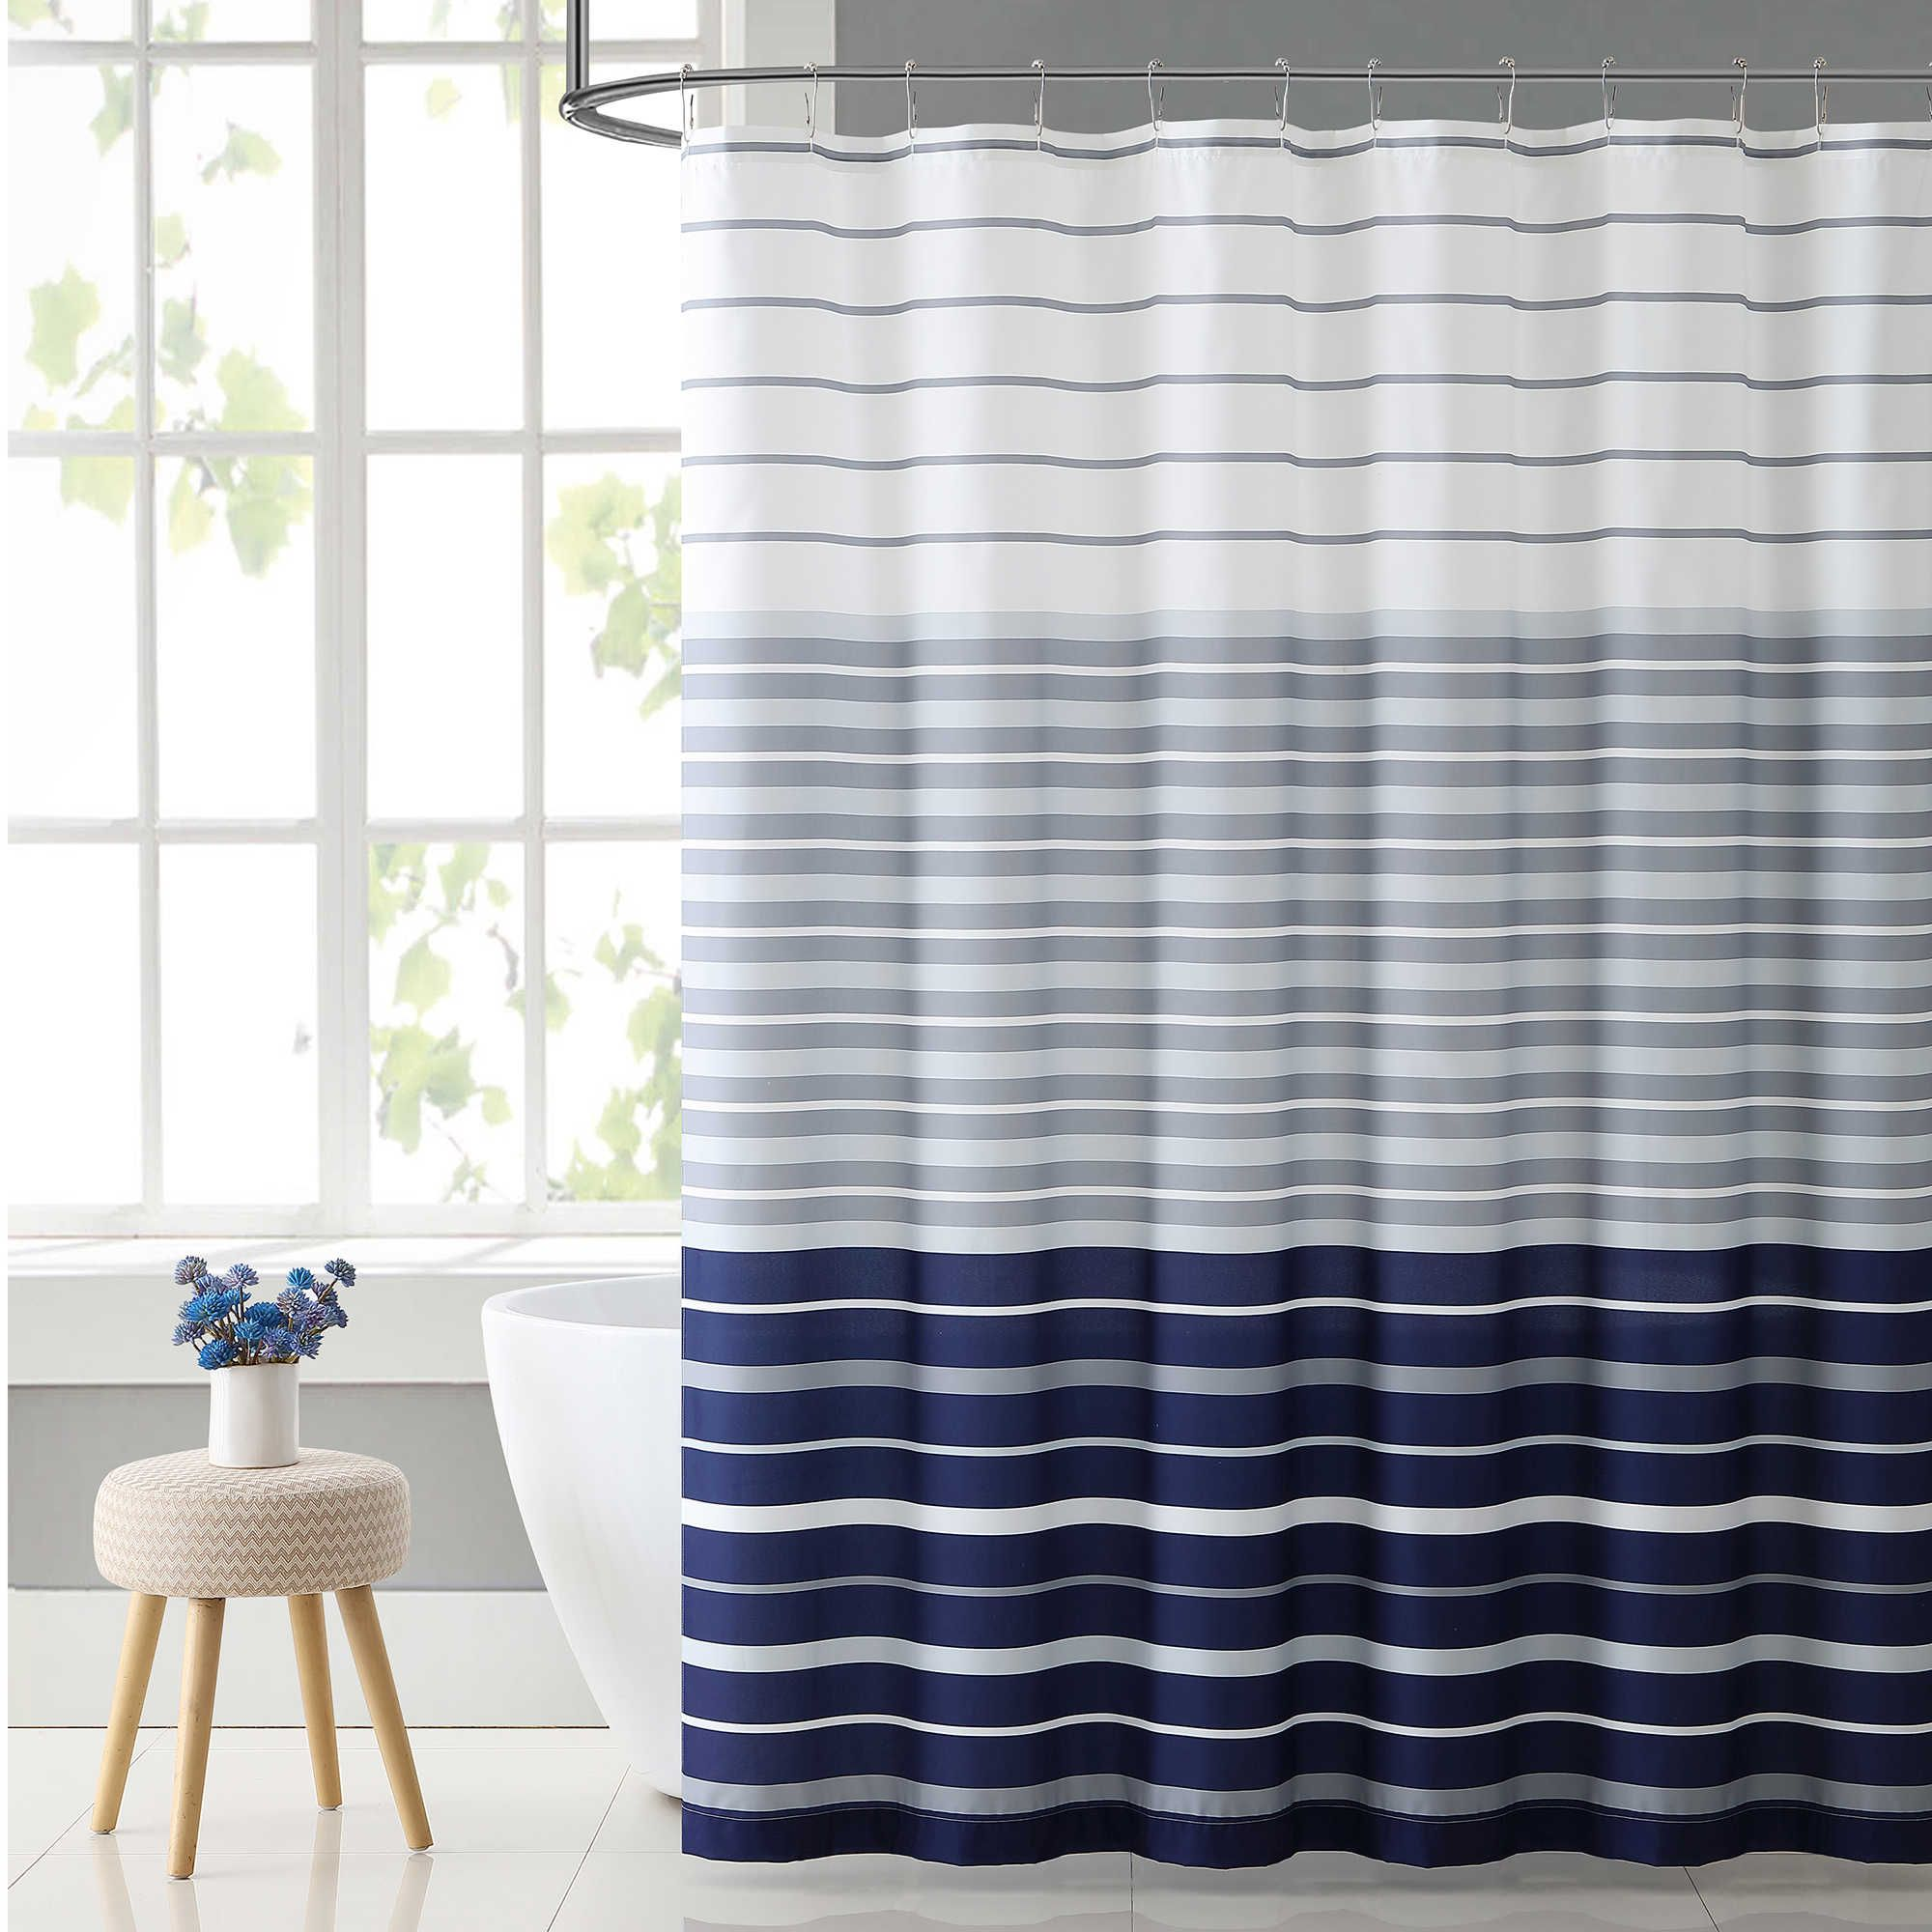 Vcny Home Preston Shower Curtain In Navy White Navy Blue Shower